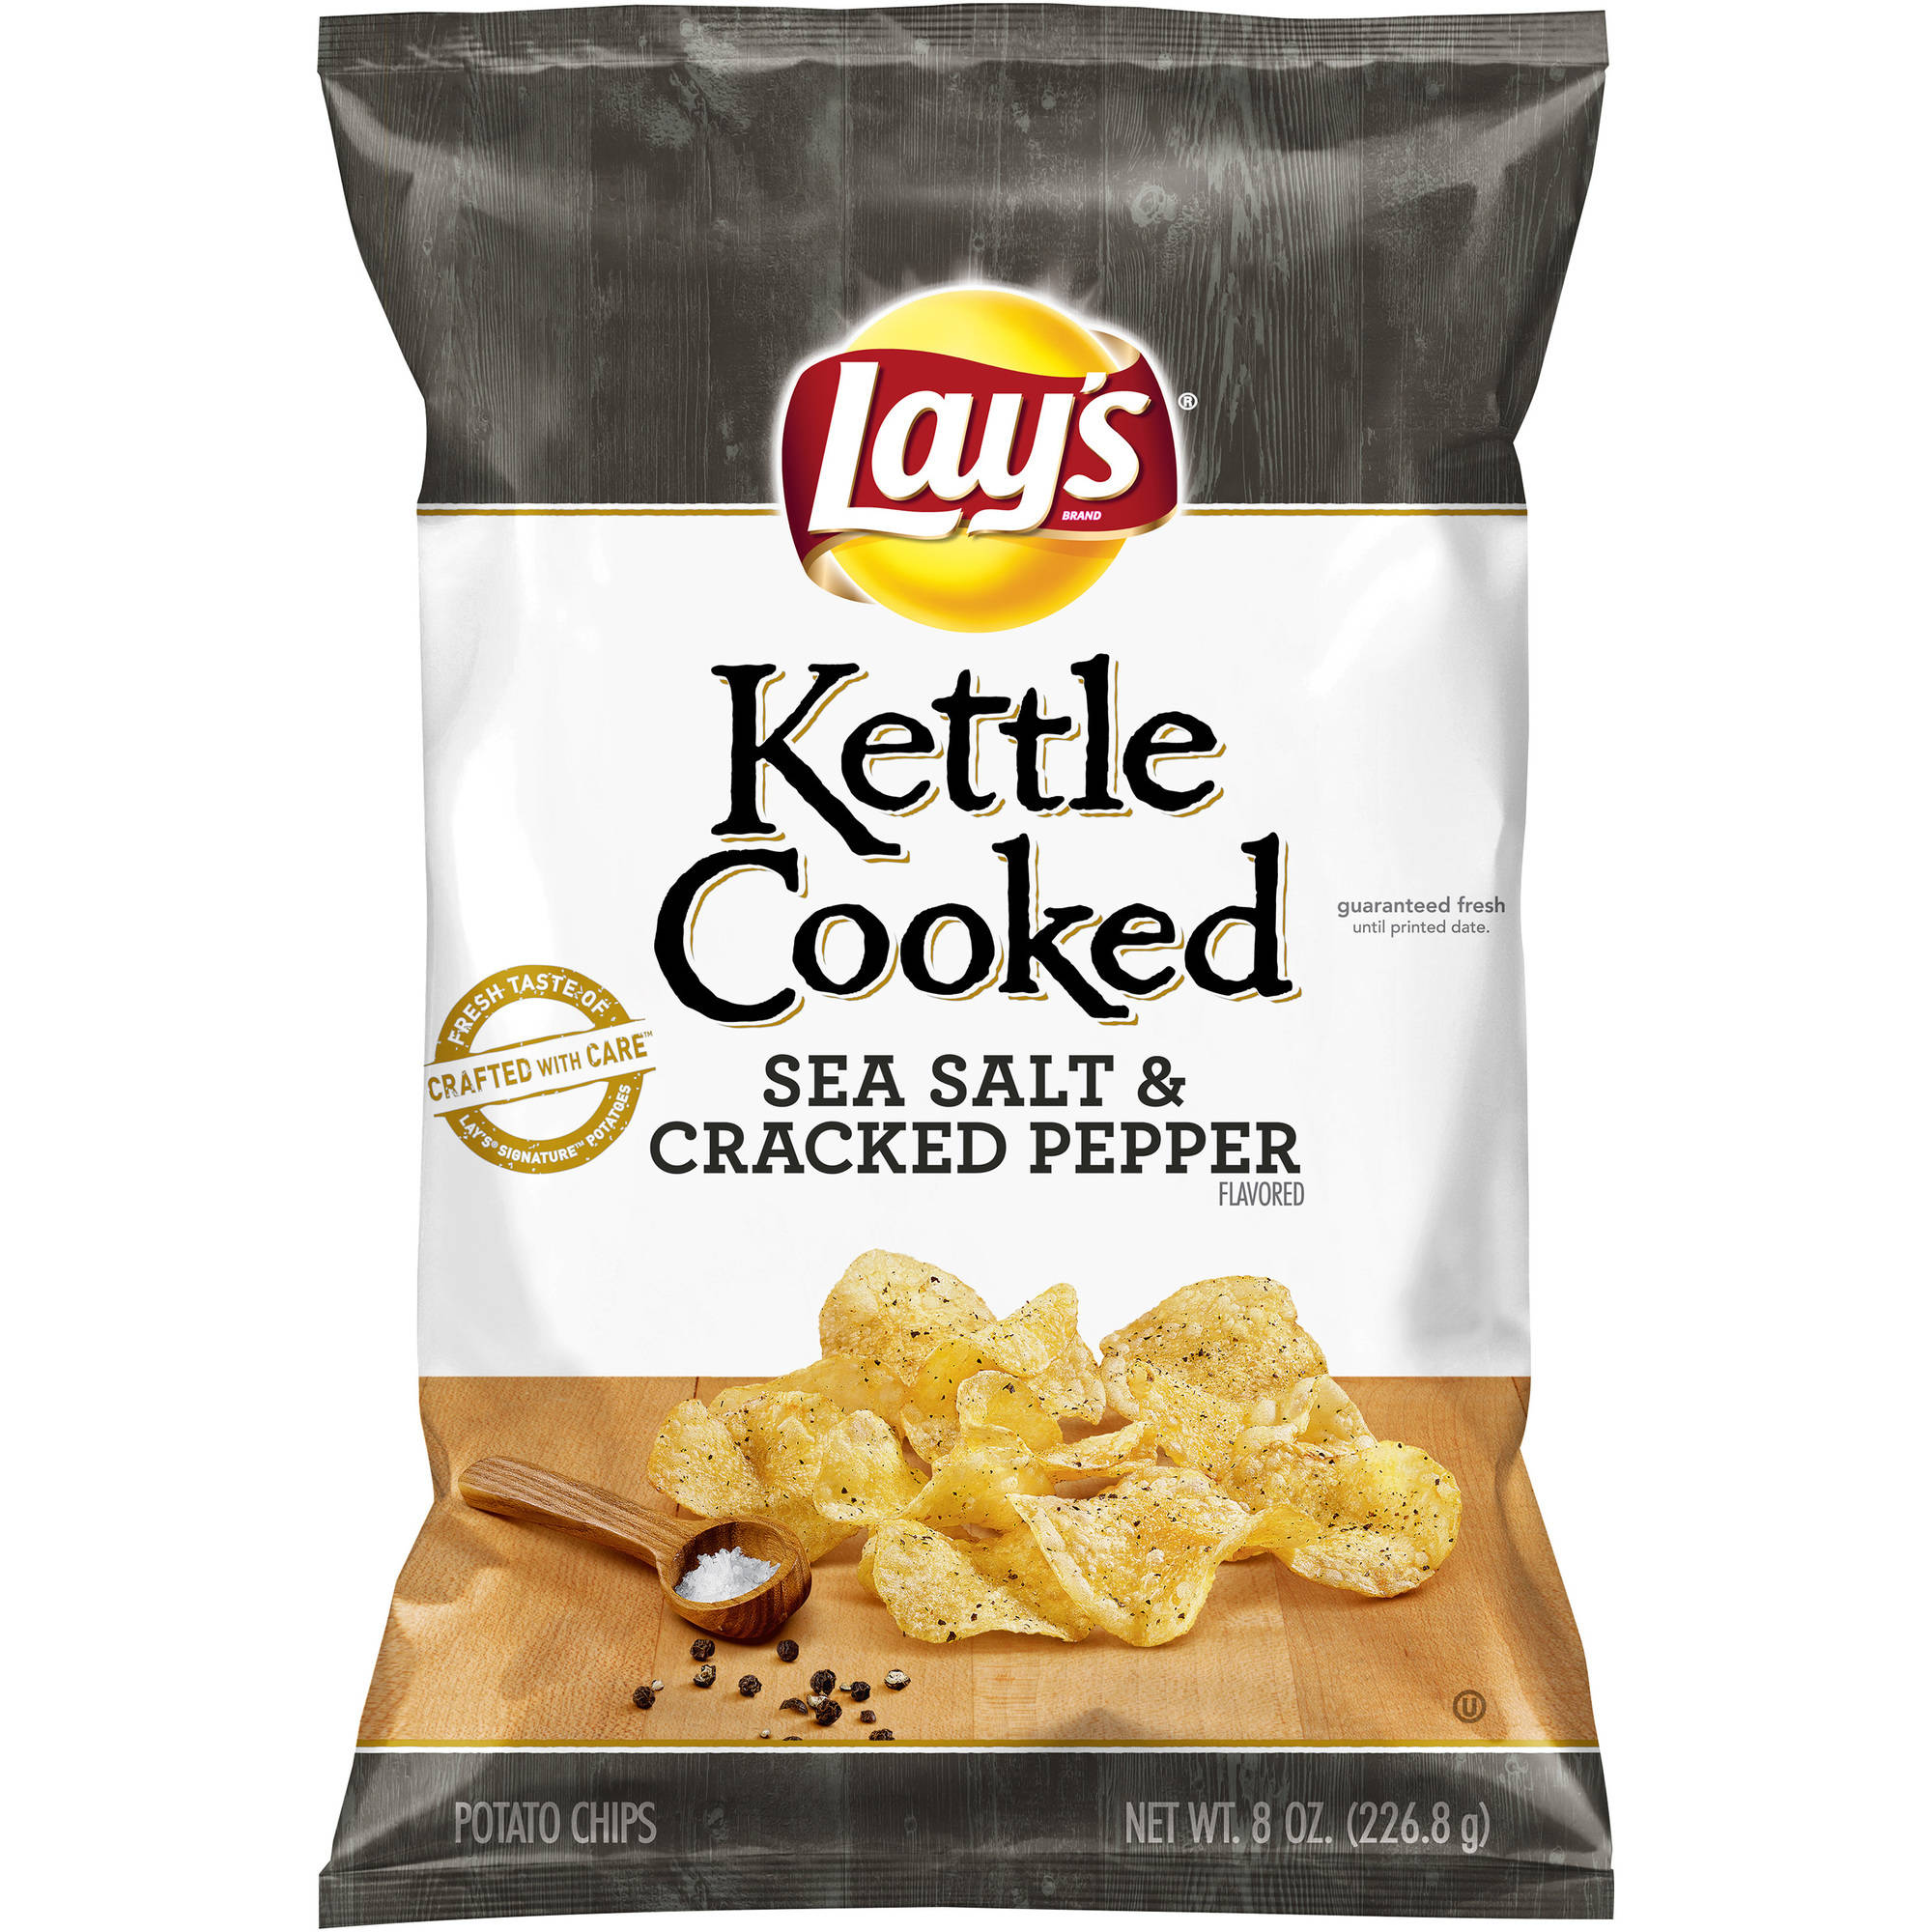 Lay's Kettle Cooked Sea Salt & Cracked Pepper Flavored Potato Chips, 8 oz